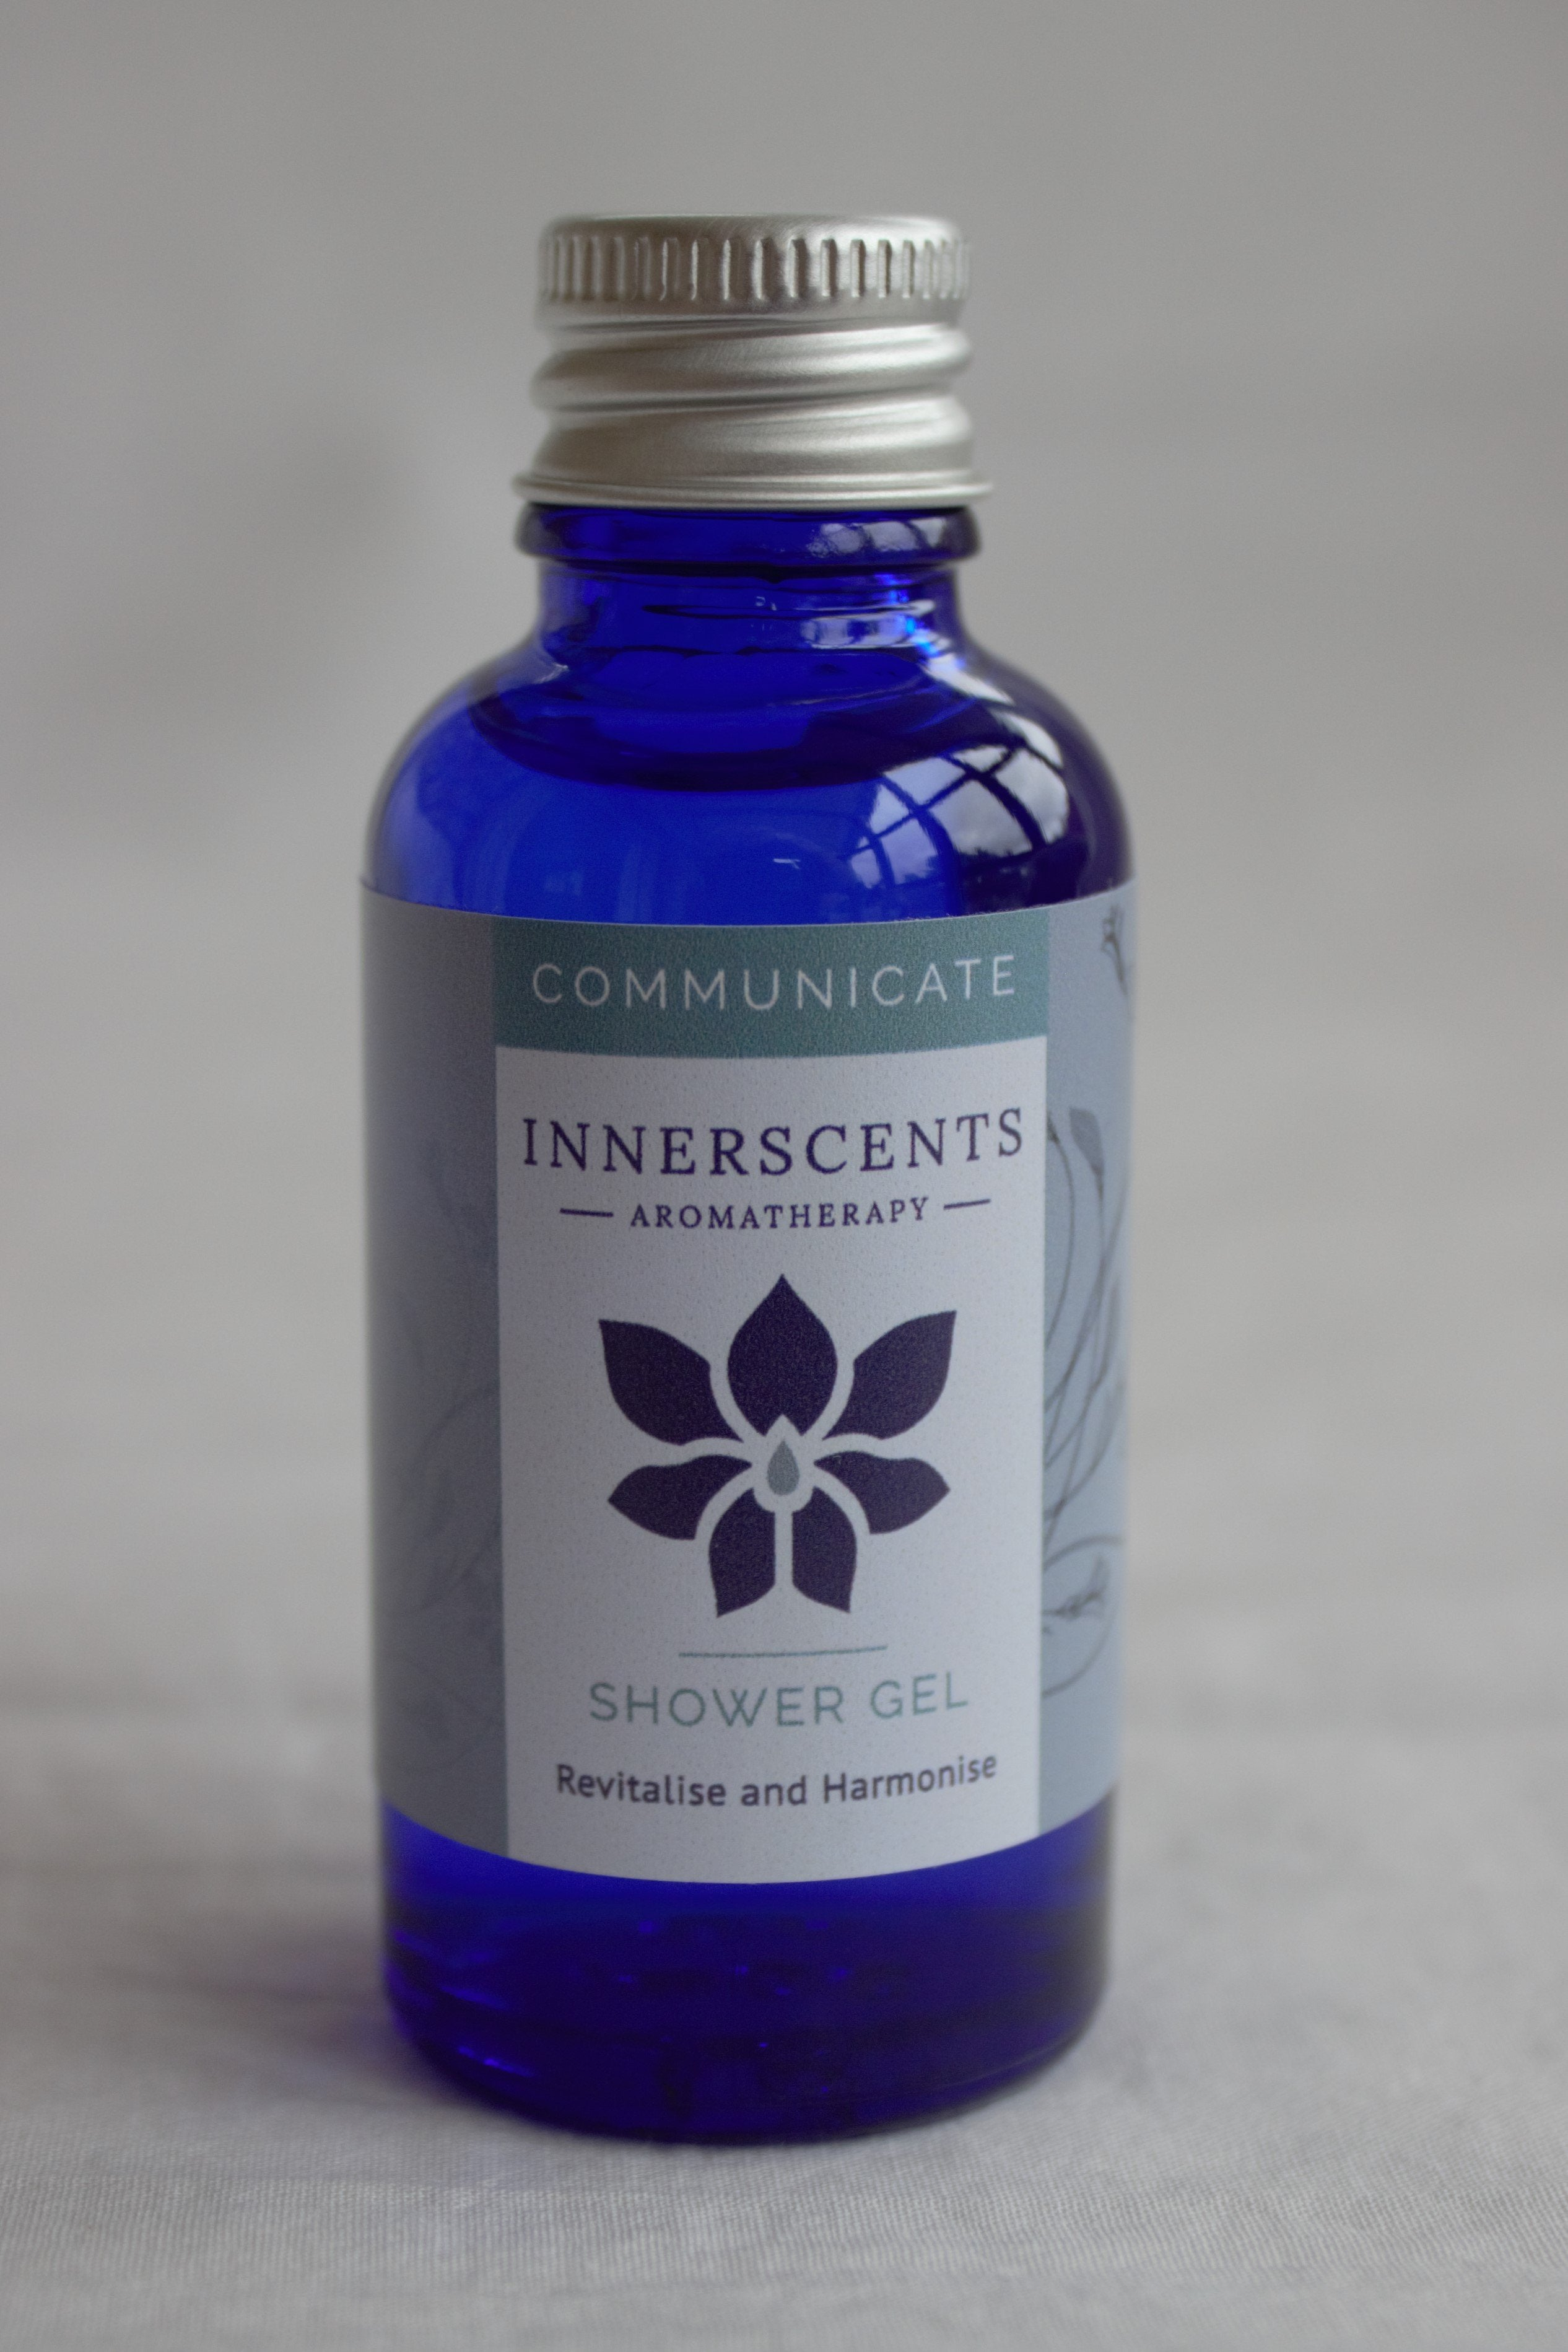 Communicate Aromatherapy Shower Gel 30ml - Innerscents Aromatherapy